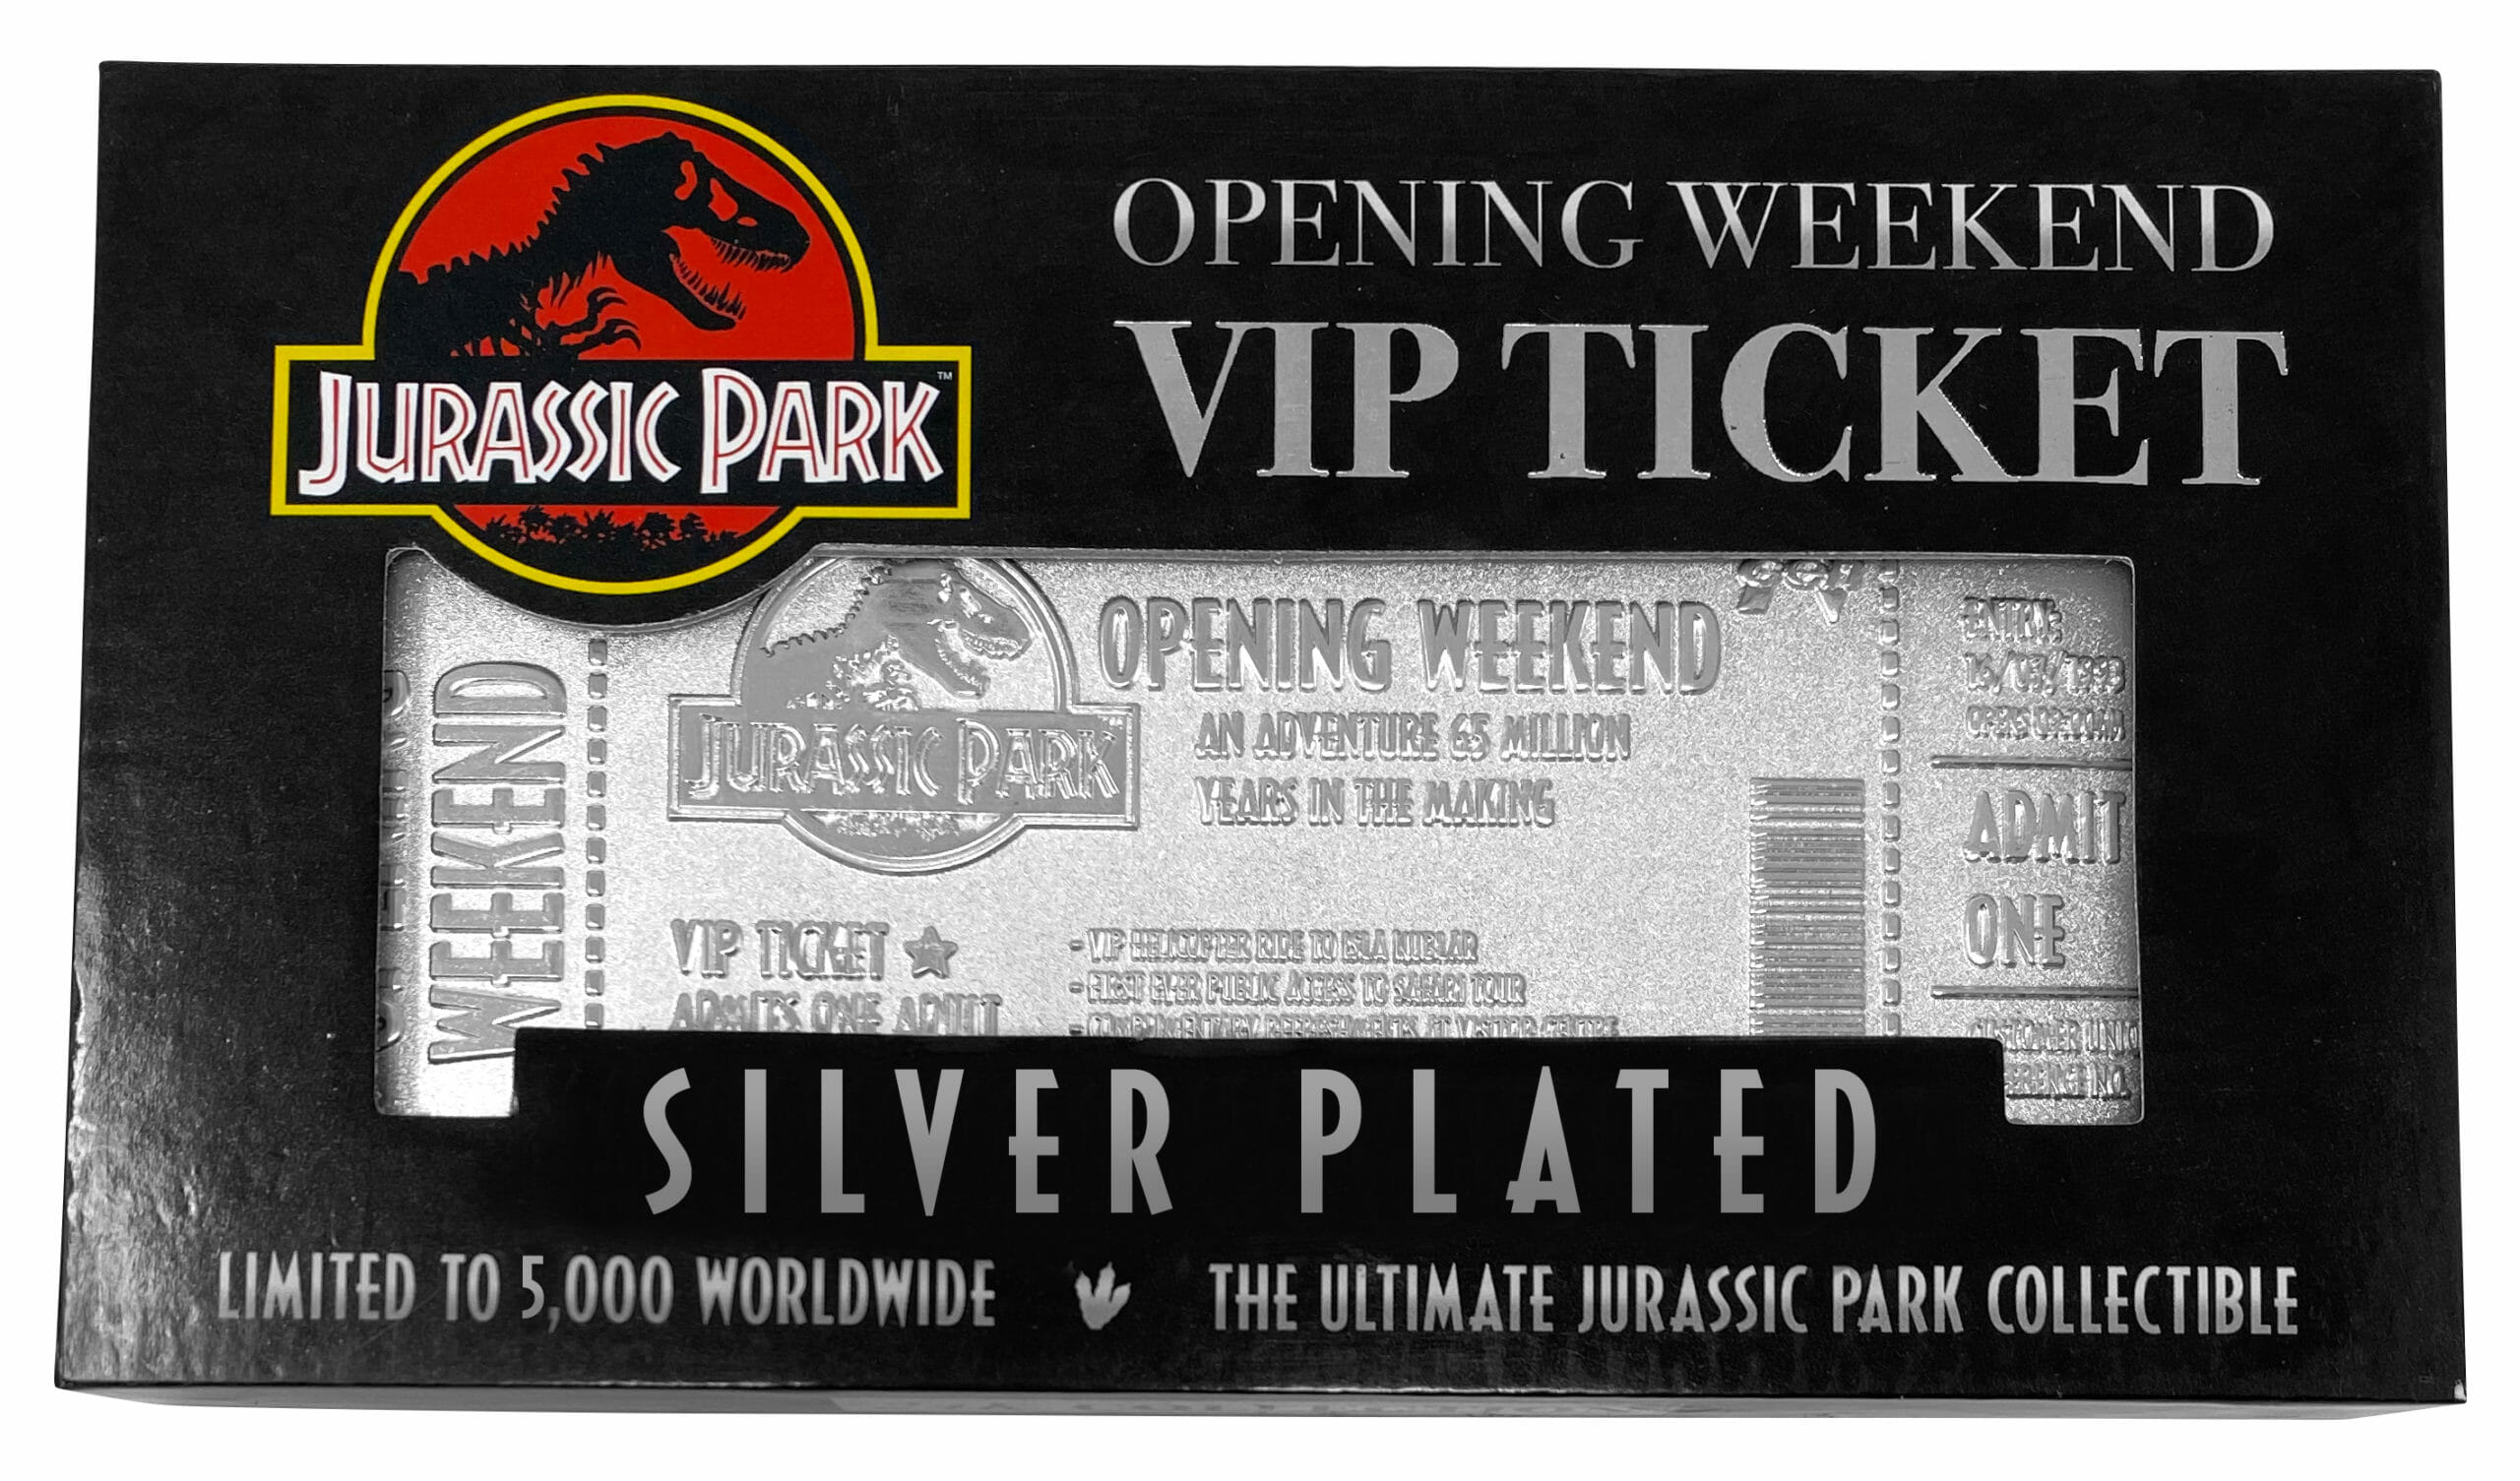 Jurassic Park Silver Plated Ticket